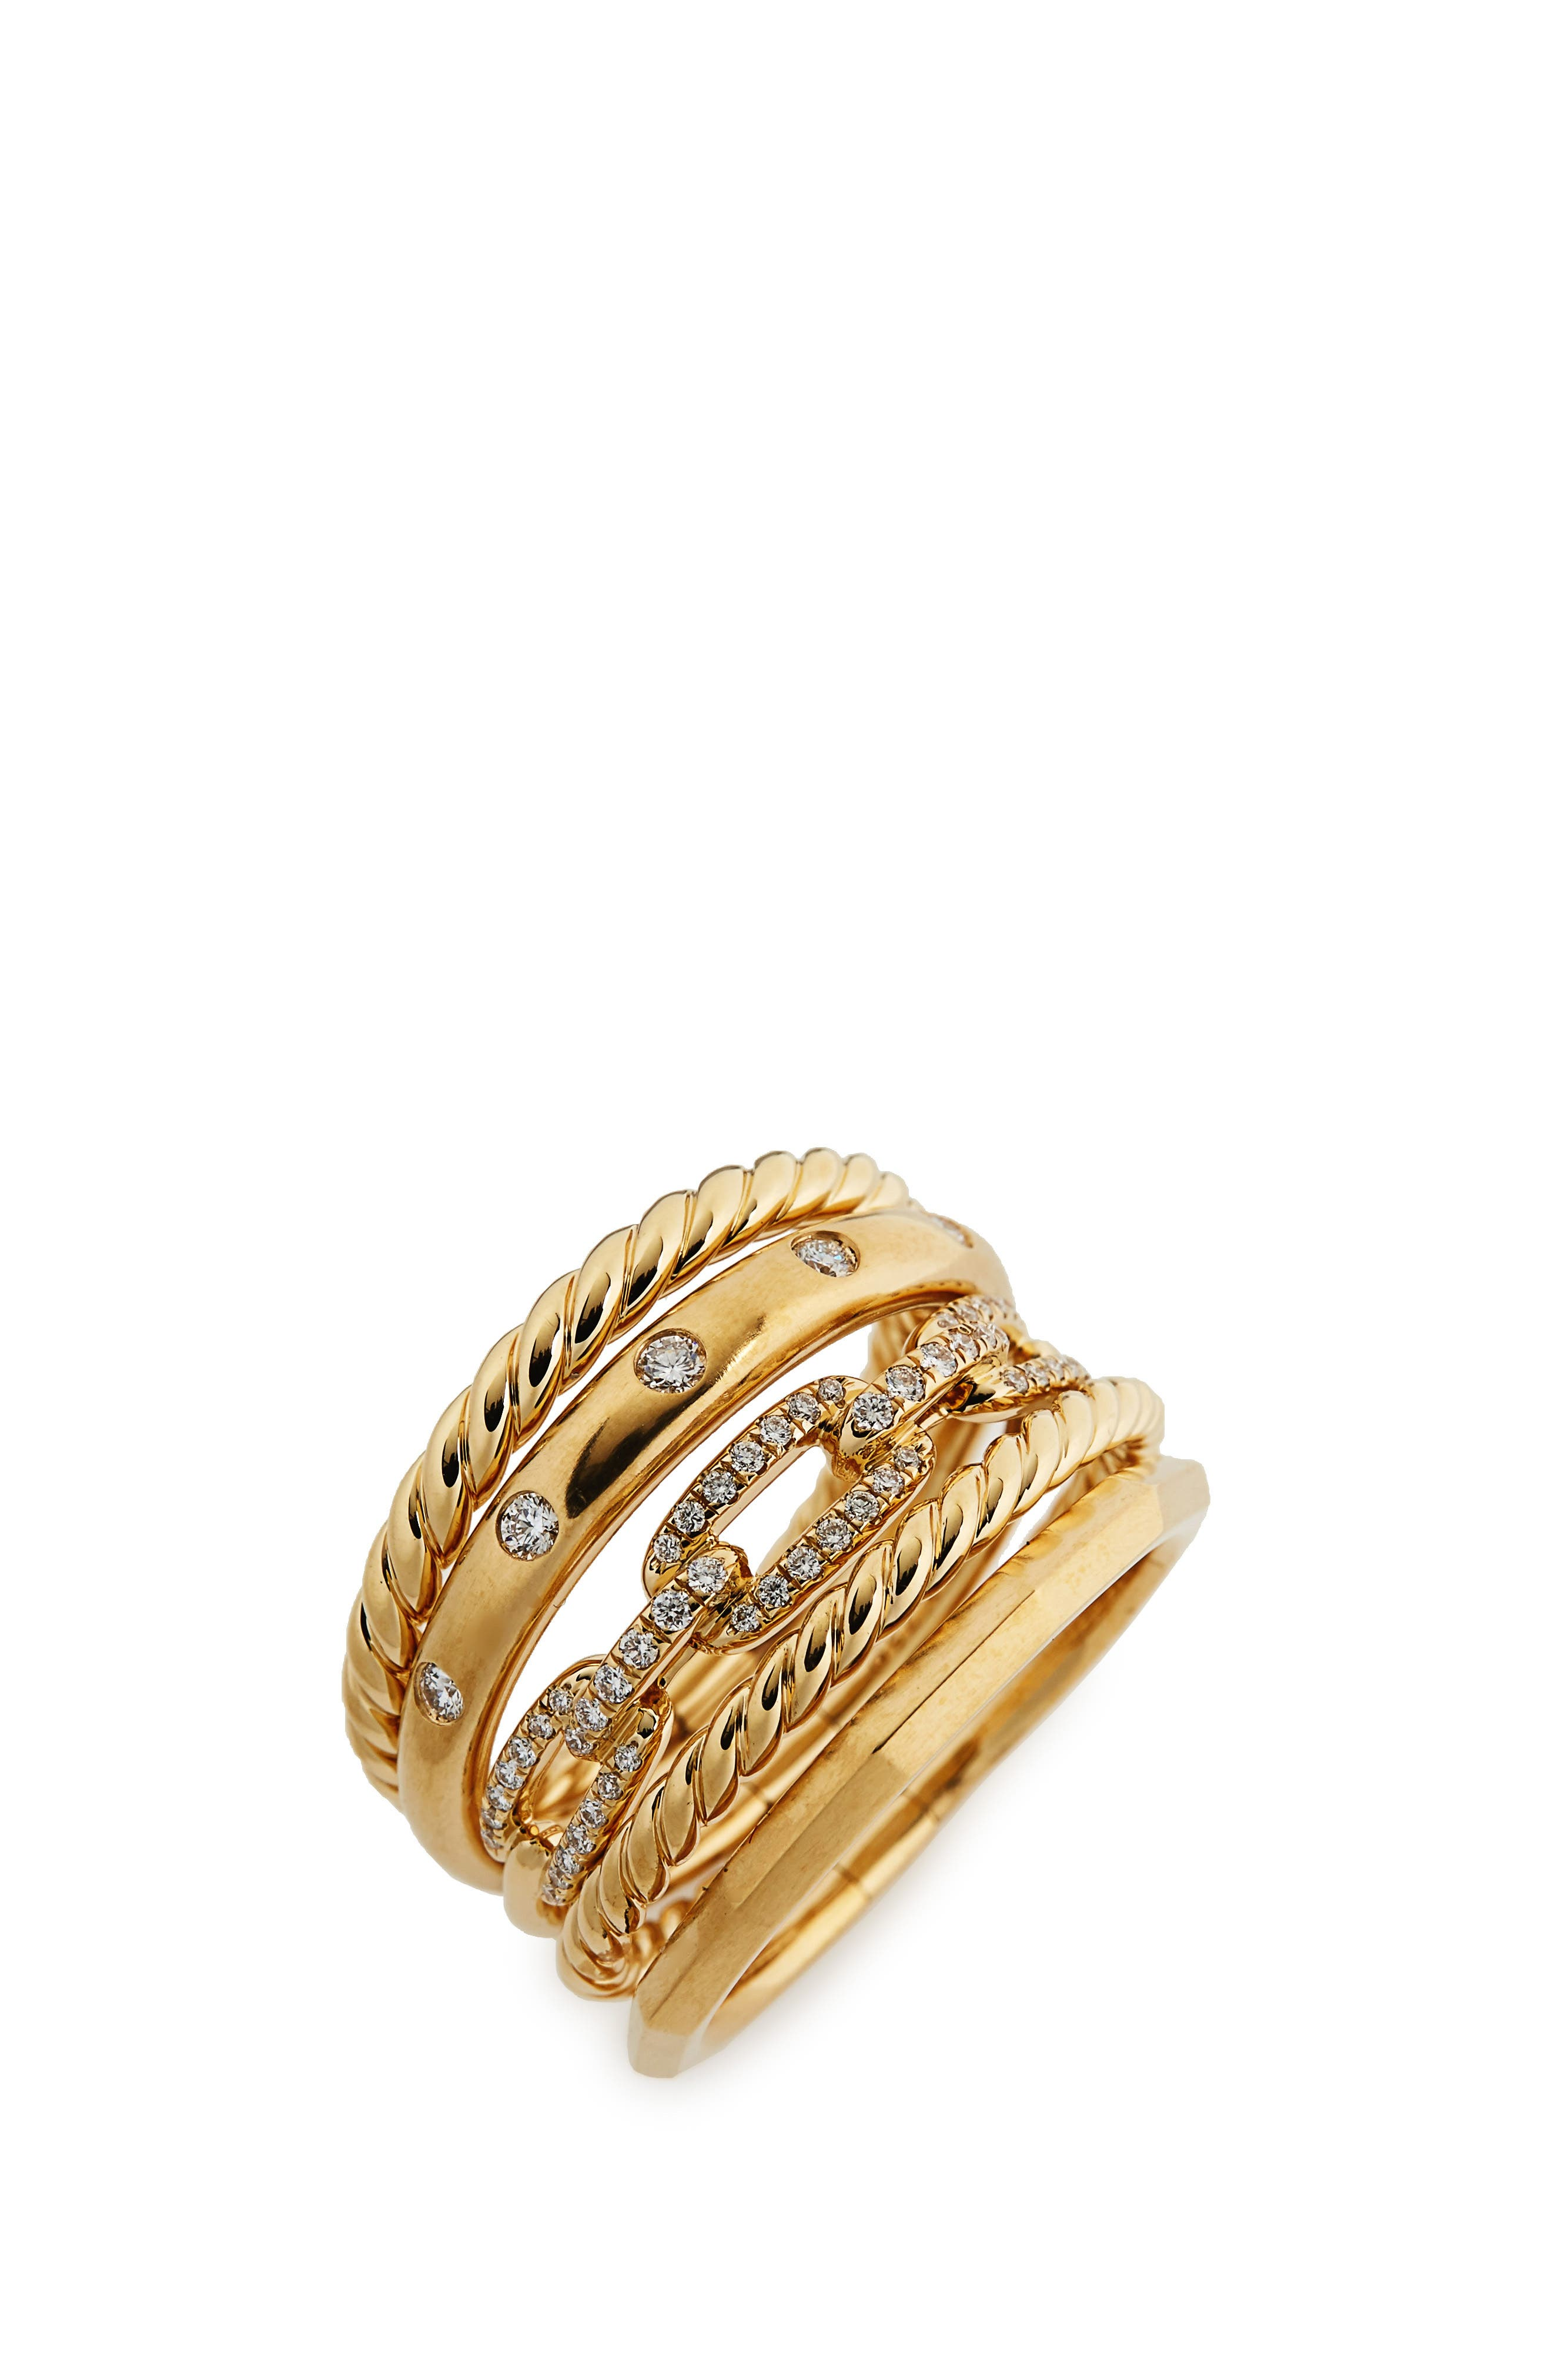 Stax Wide Ring with Diamonds in 18K Gold, 15mm,                             Main thumbnail 1, color,                             Yellow Gold